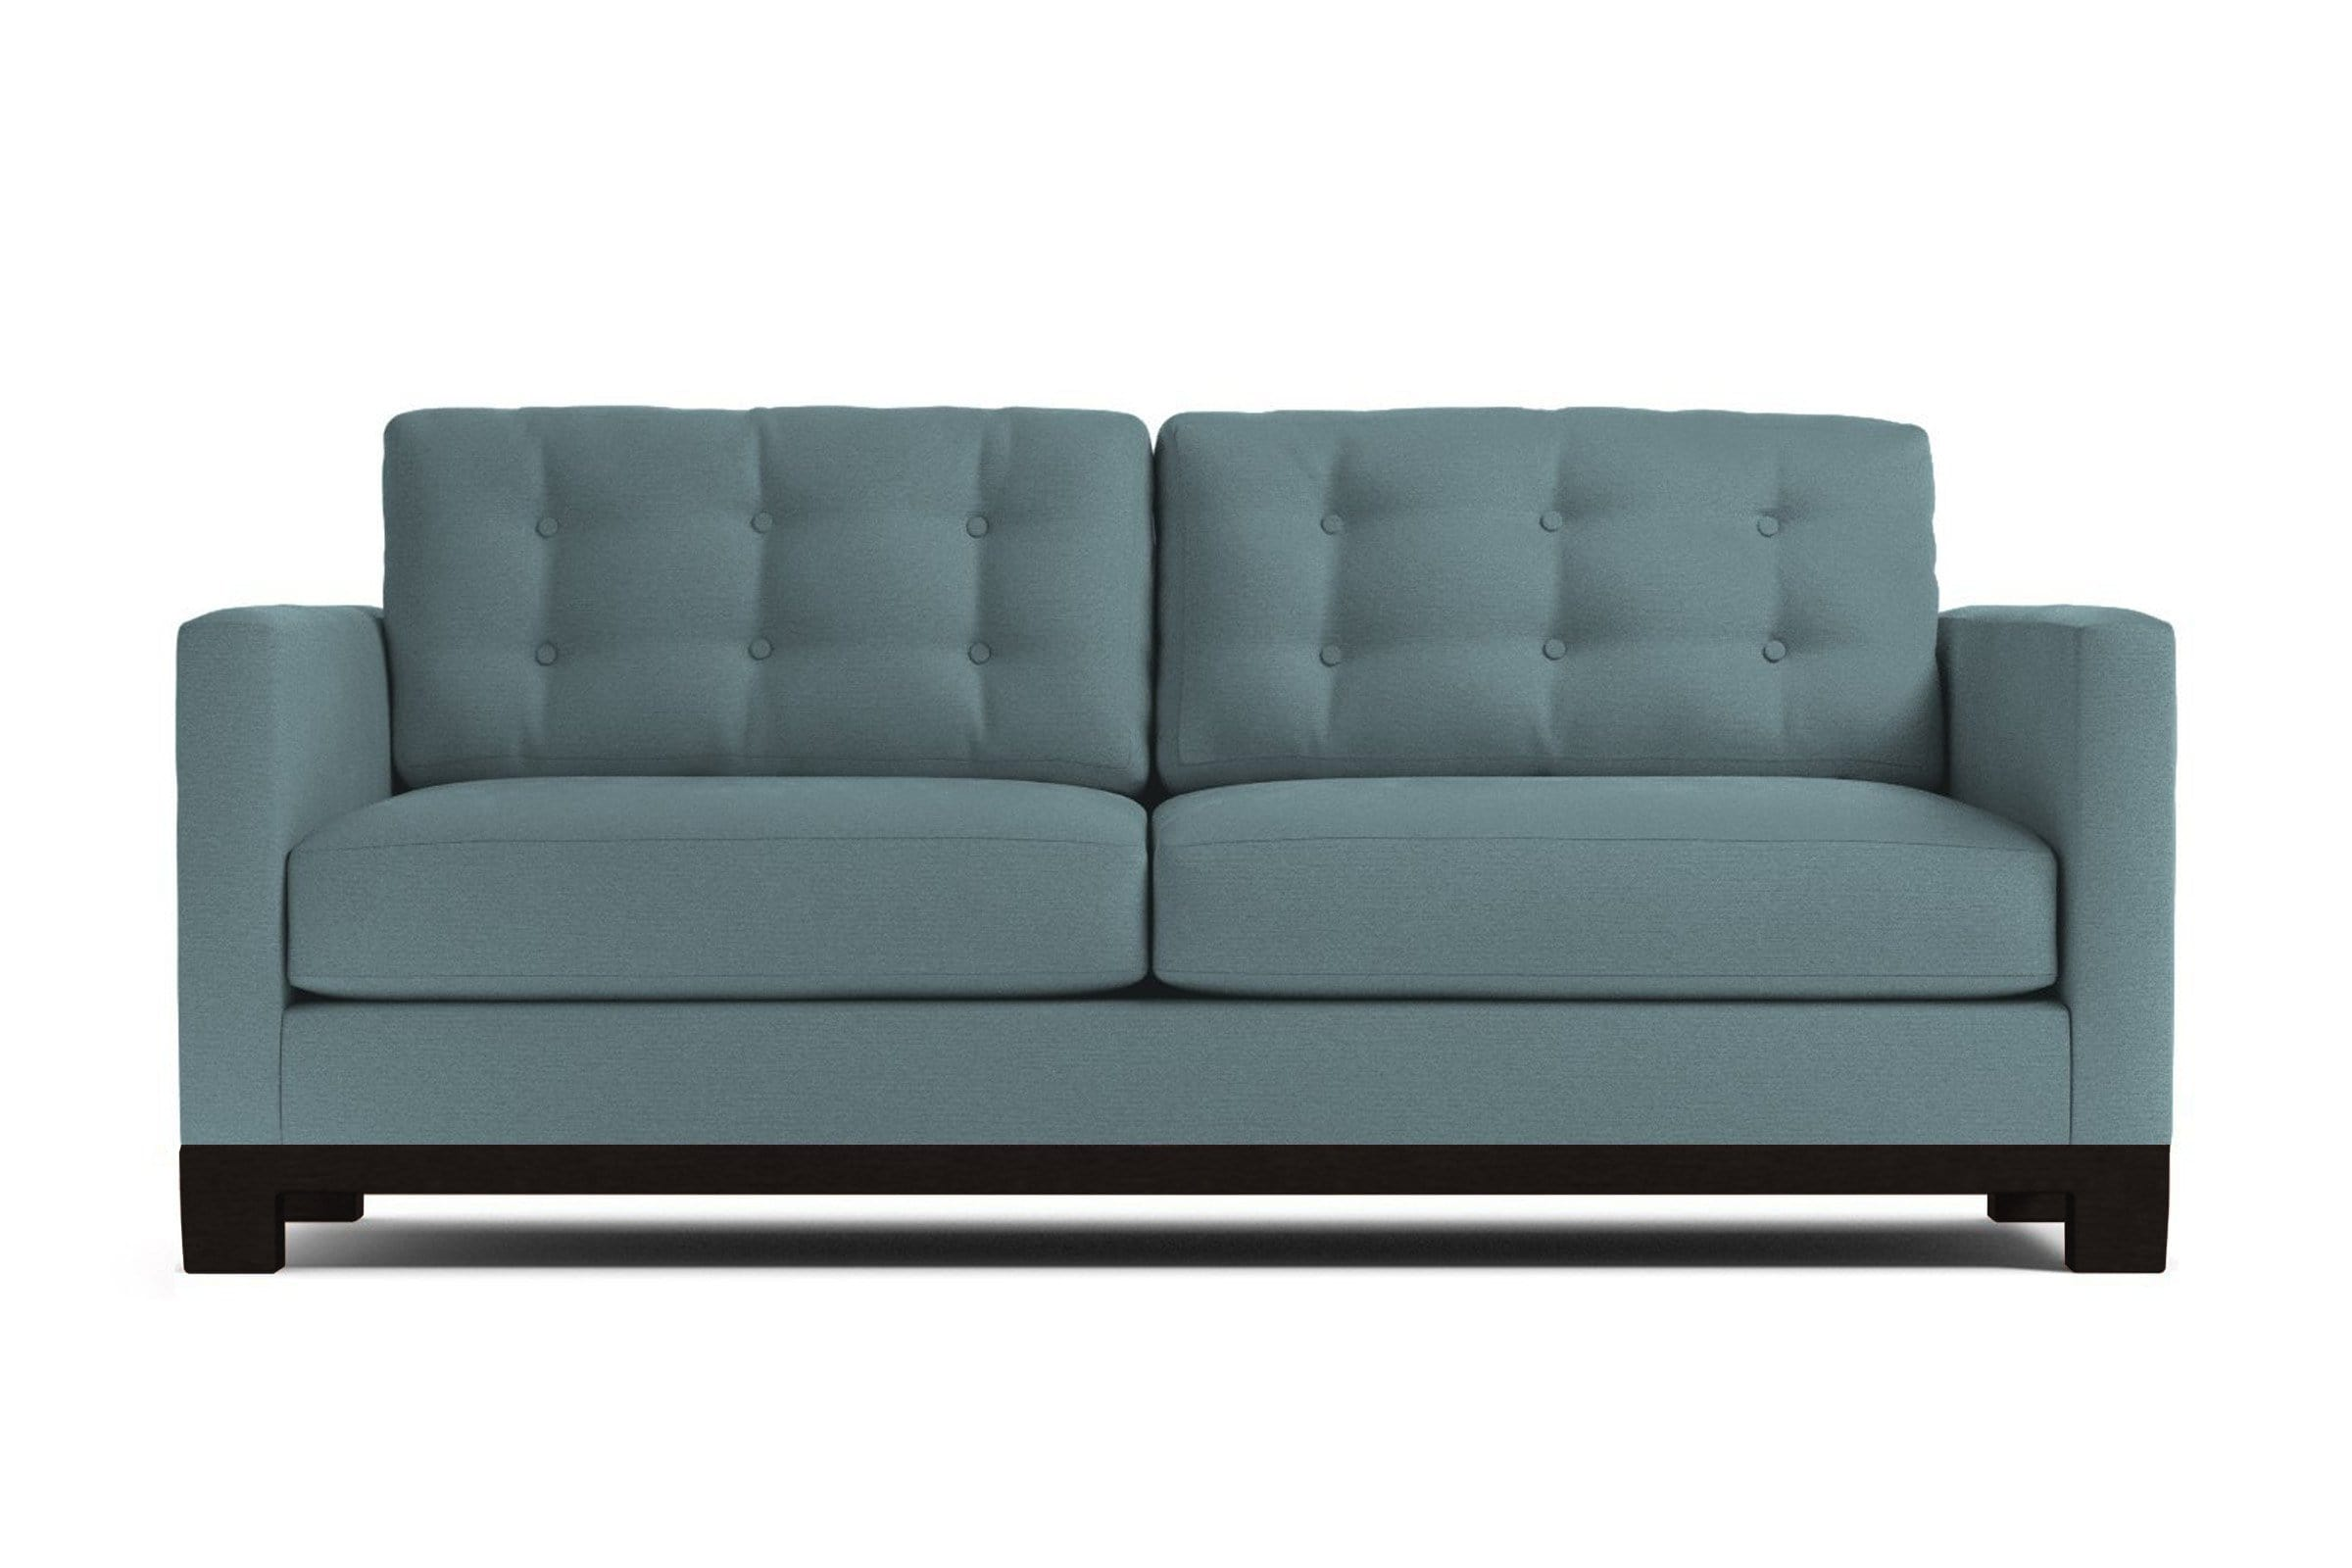 Logan Drive Apartment Size Sleeper Sofa - Blue Velvet - Pull Out Couch Bed Made in the USA - Sold by Apt2B